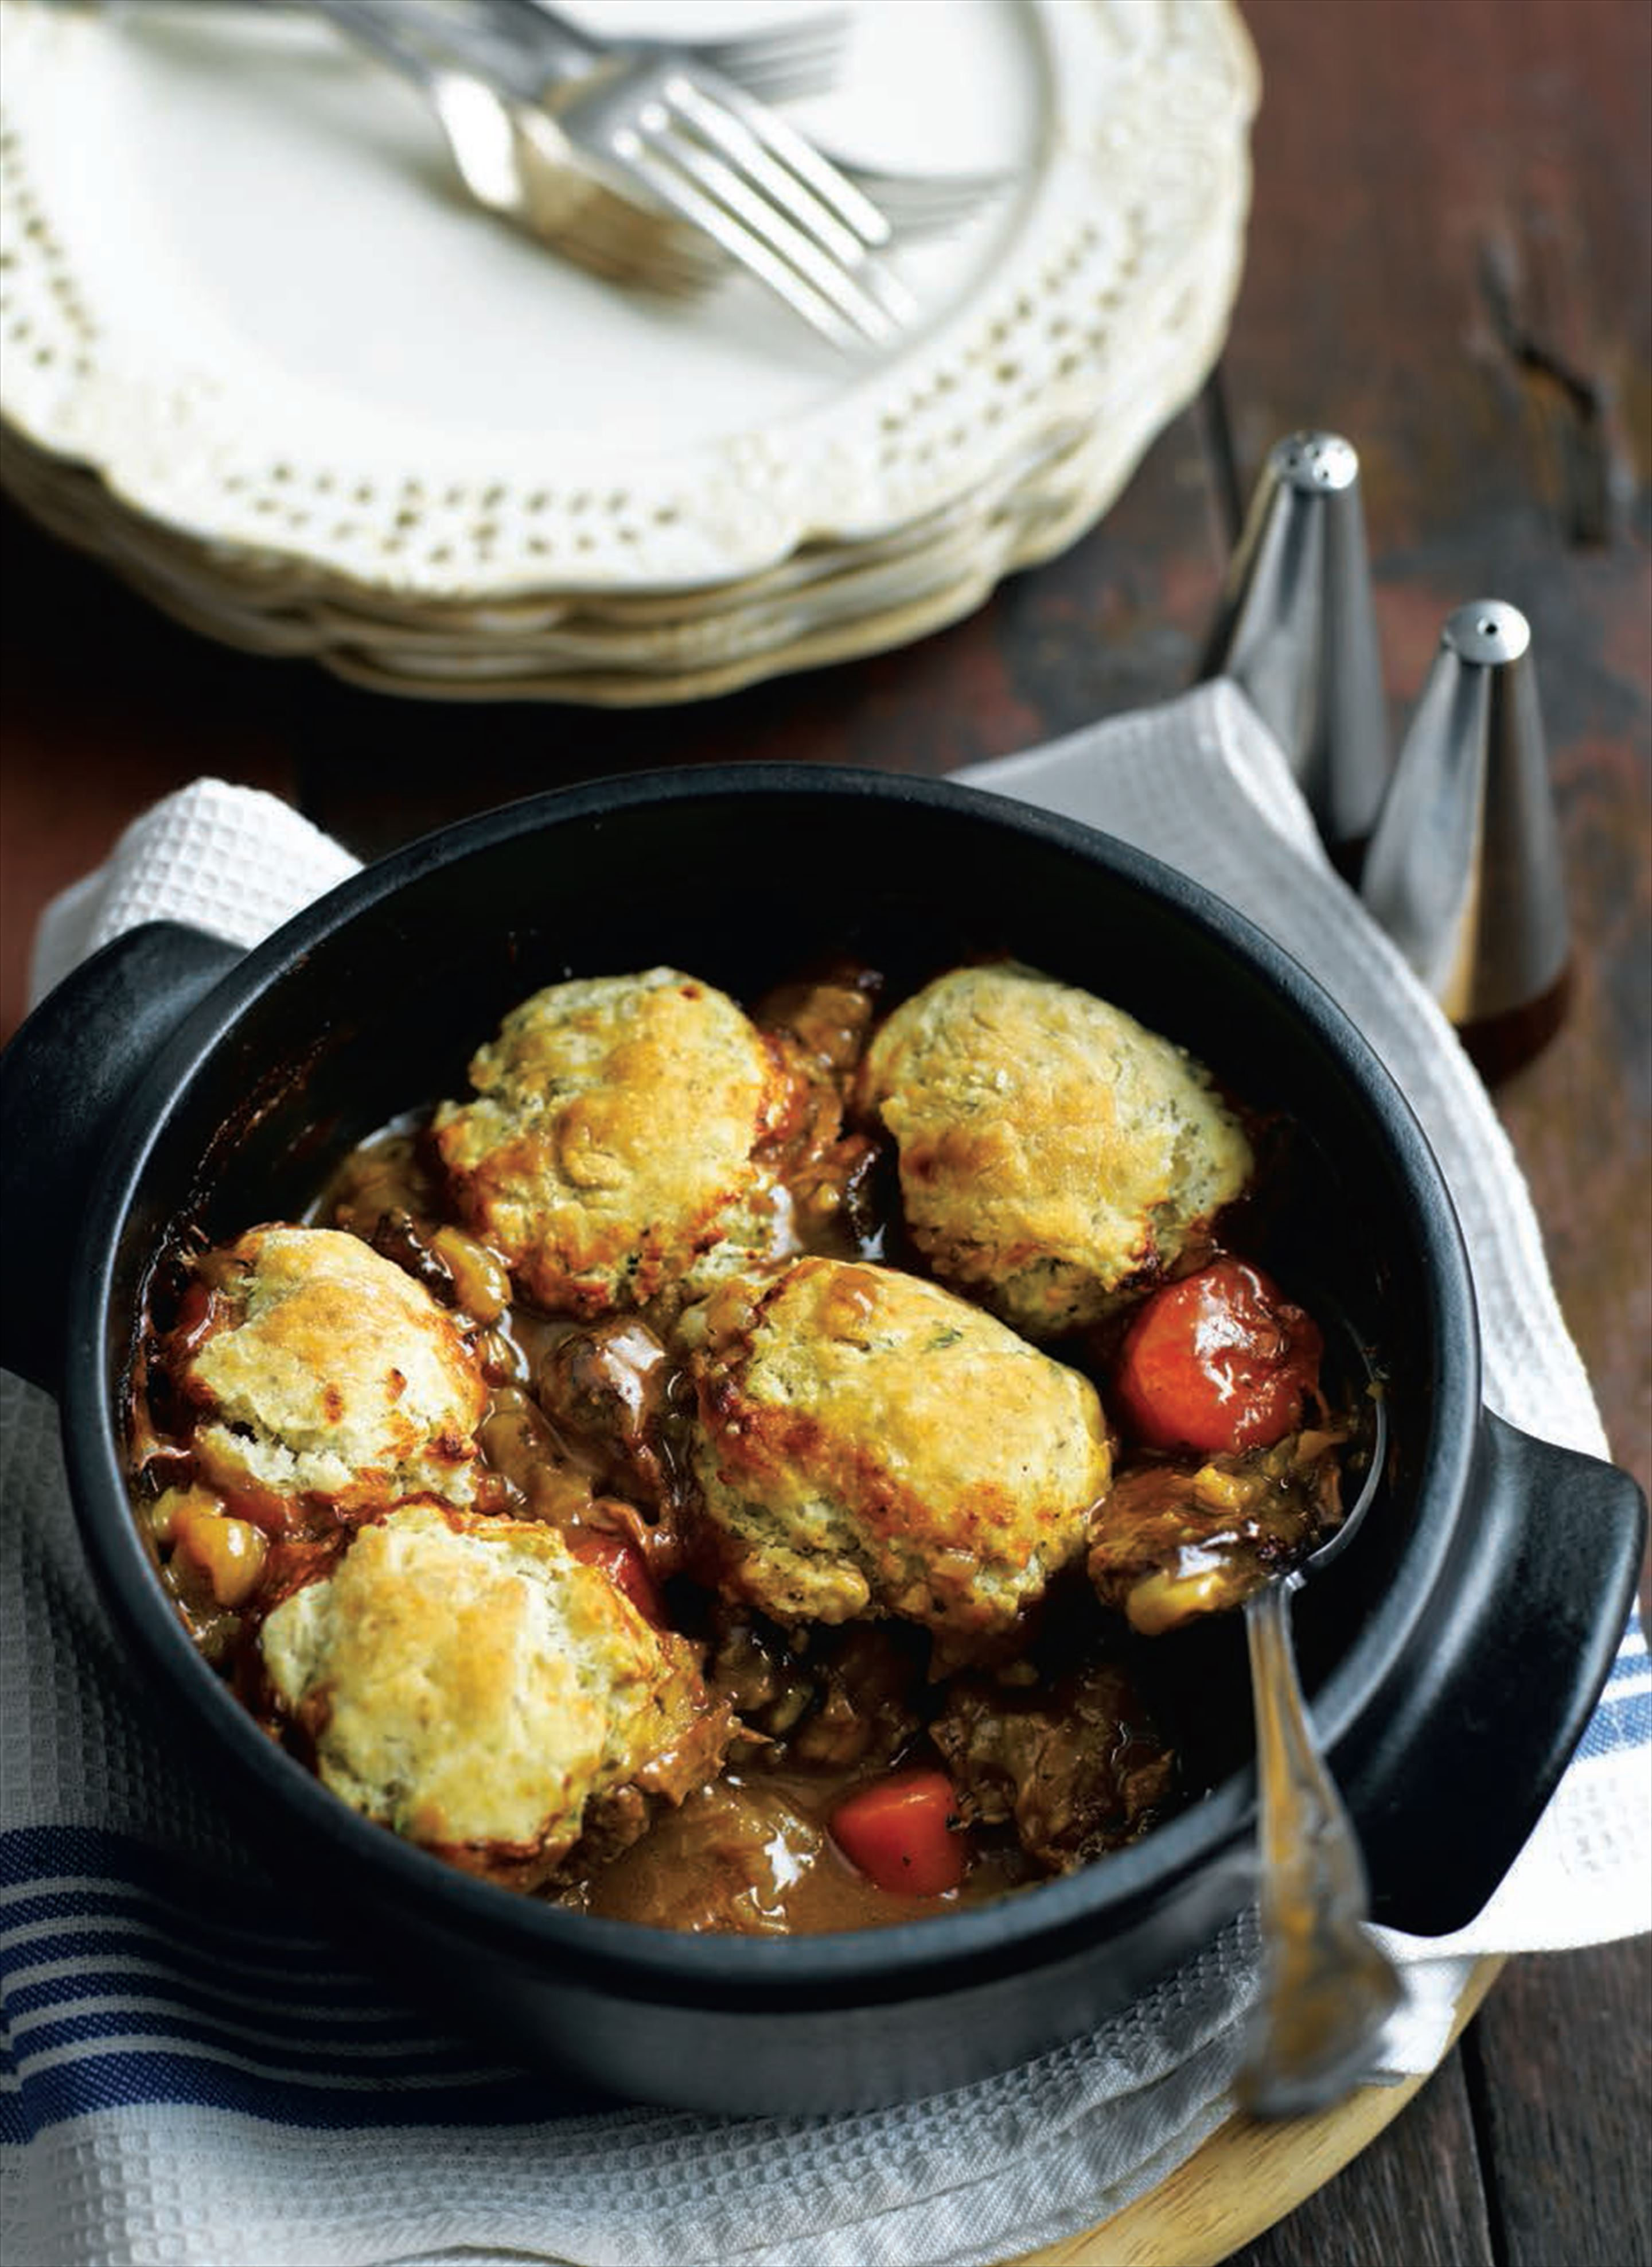 Beef stew with herby dumplings